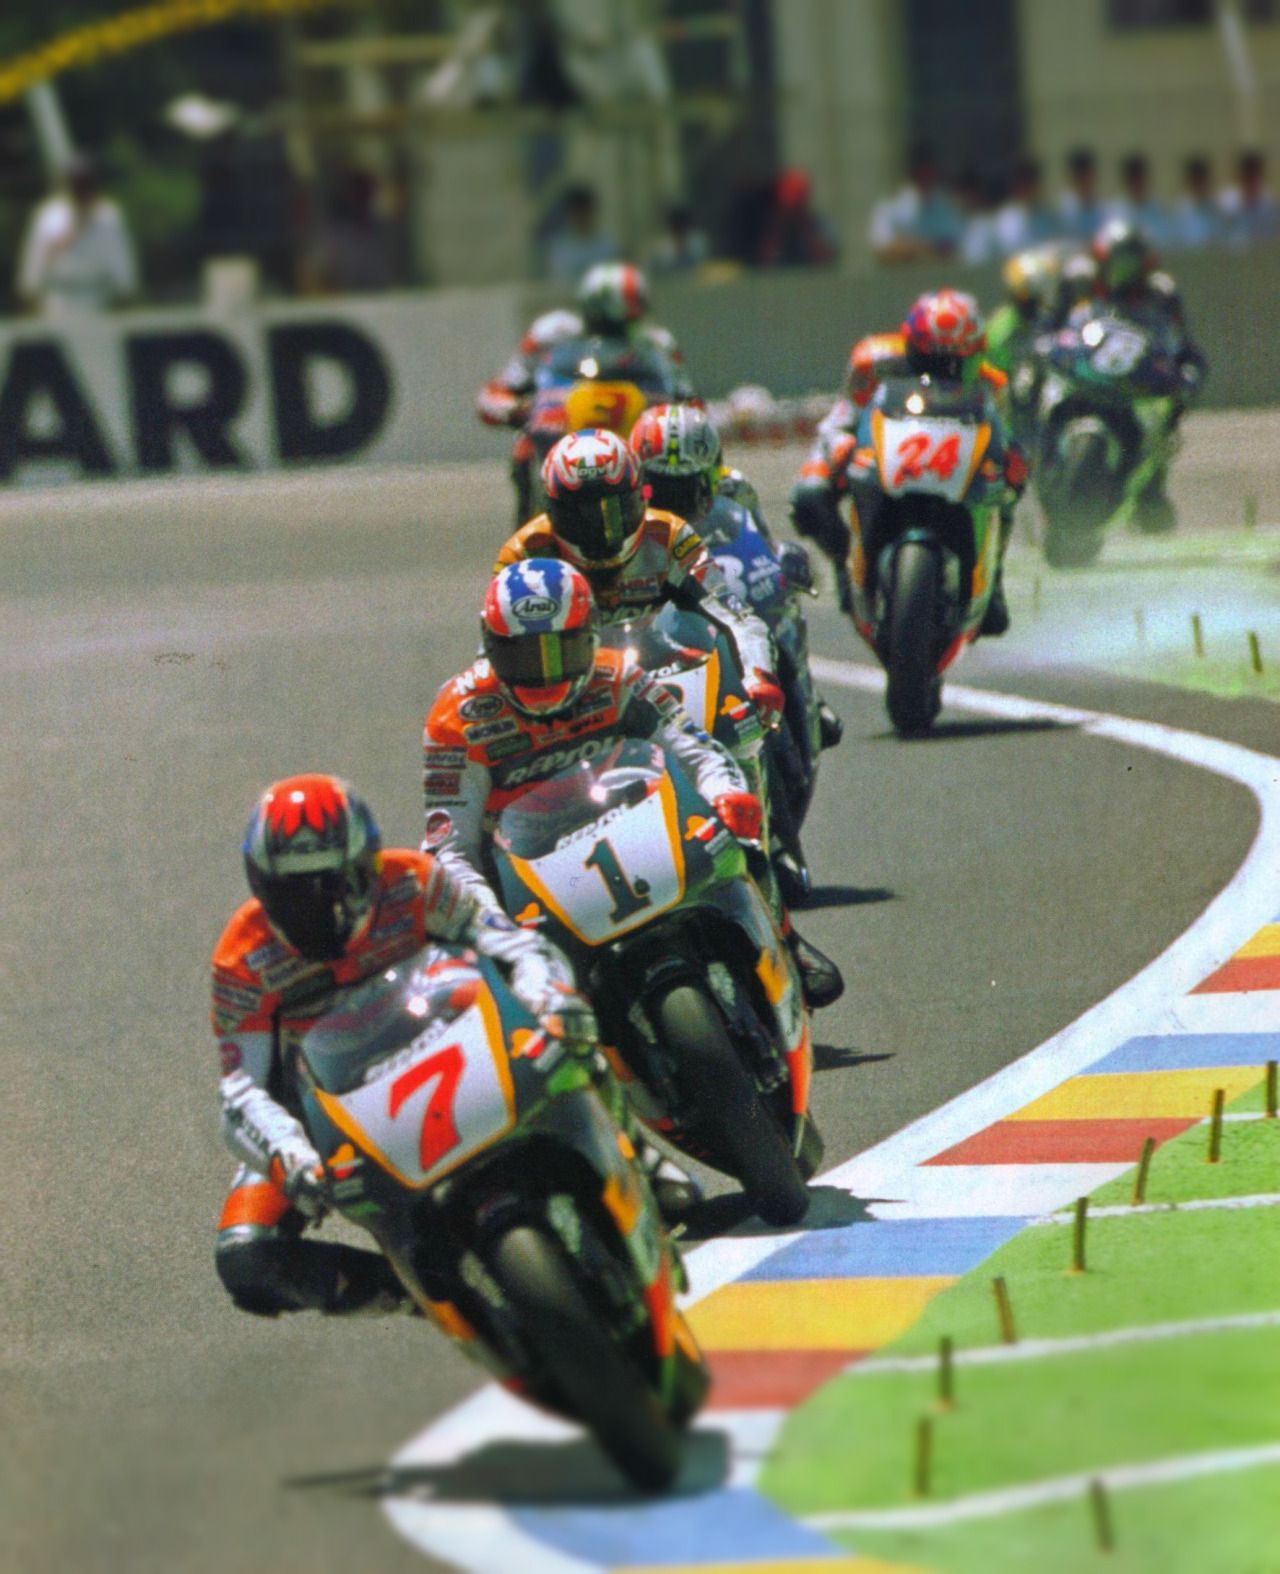 1997 French motorcycle Grand Prix, 8 June 1997, Circuit